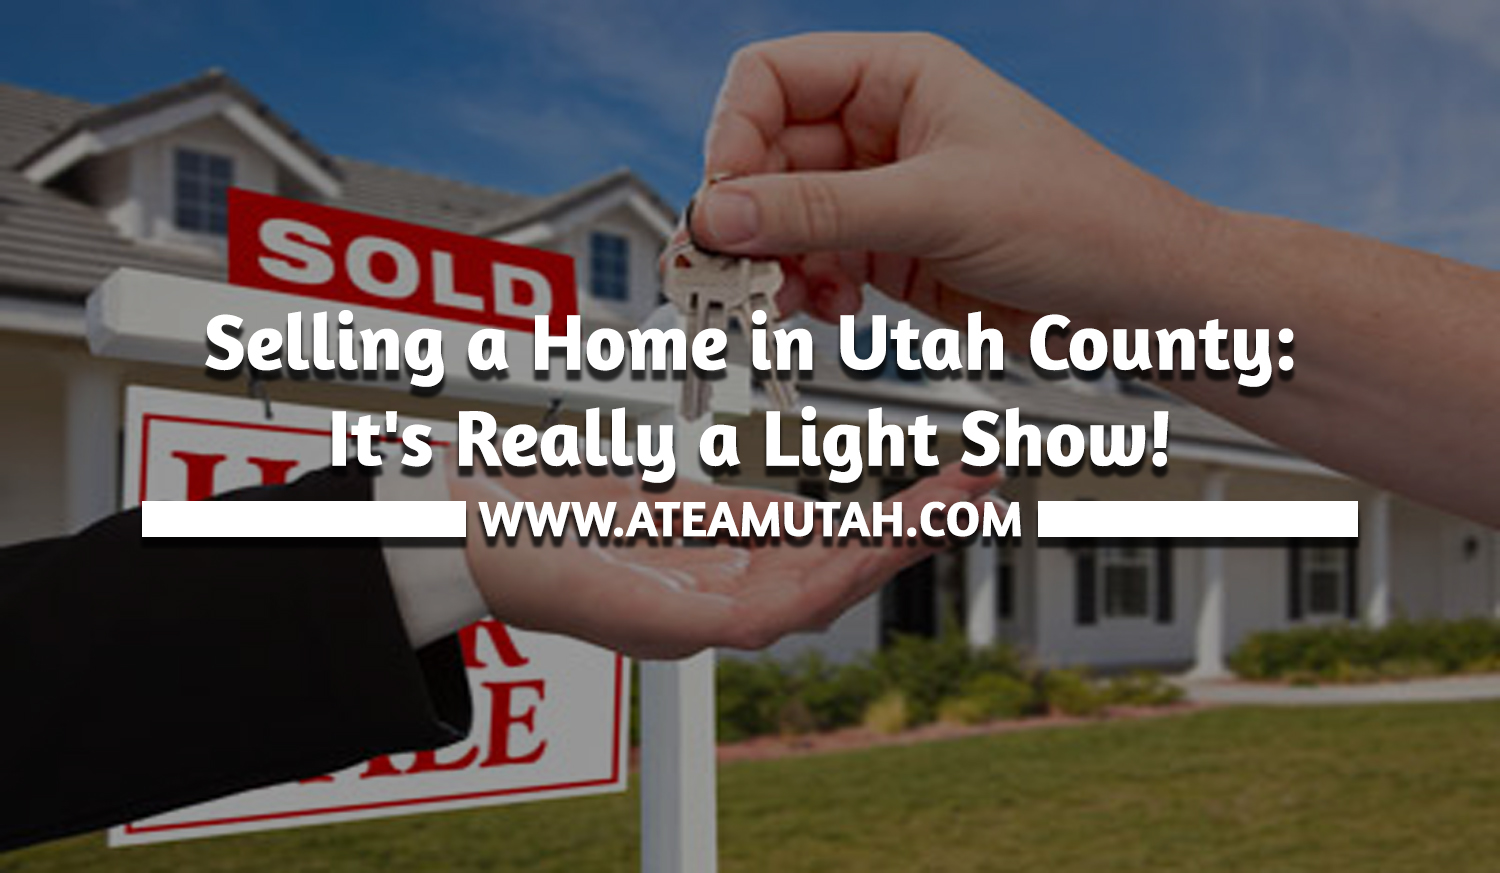 Selling a Home in Utah County: It's Really a Light Show!